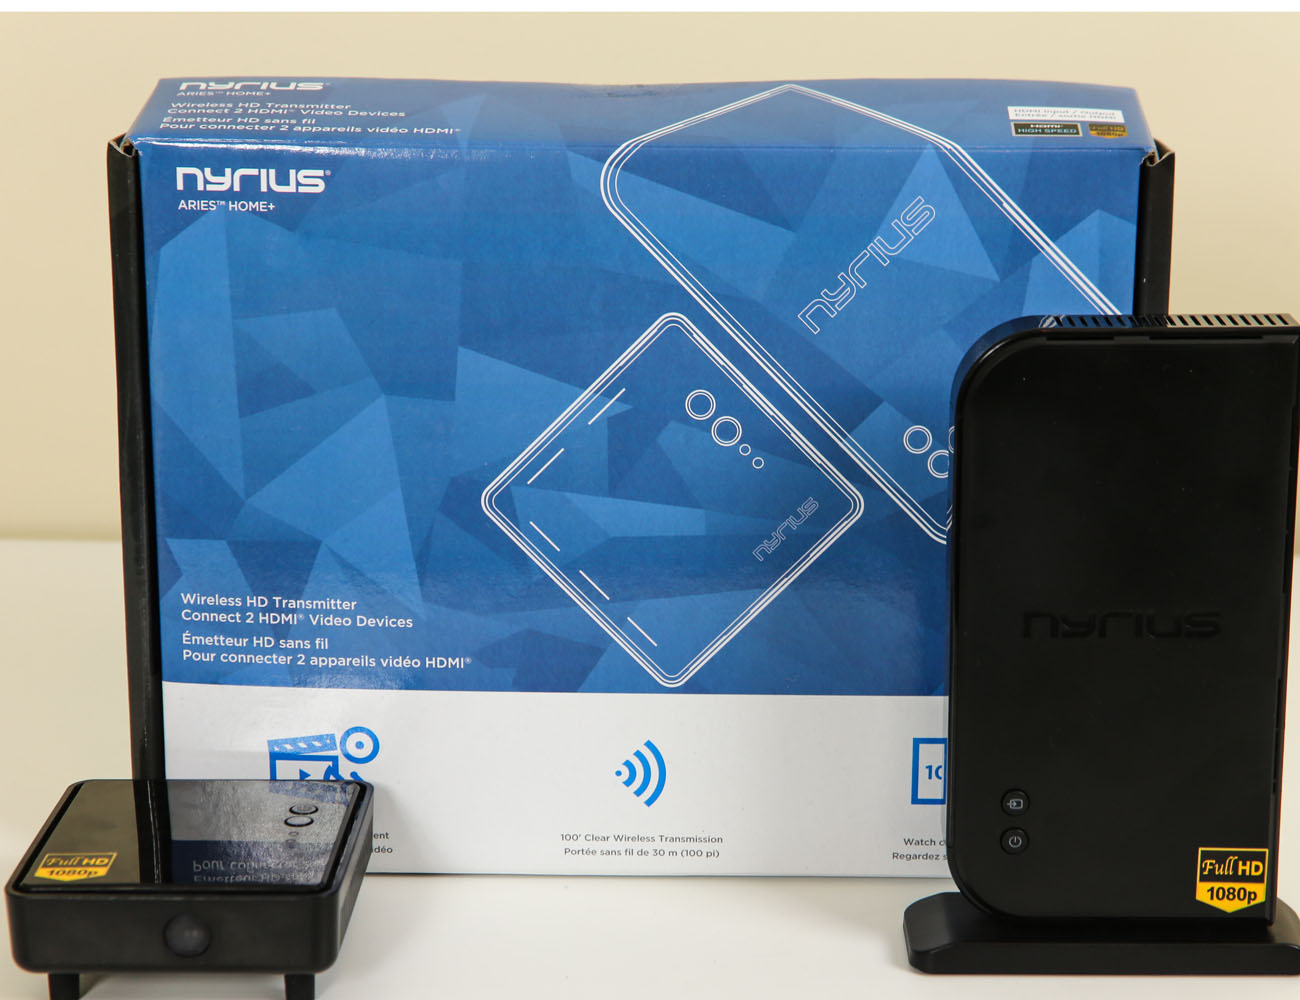 ARIES Home+ Wireless HDMI